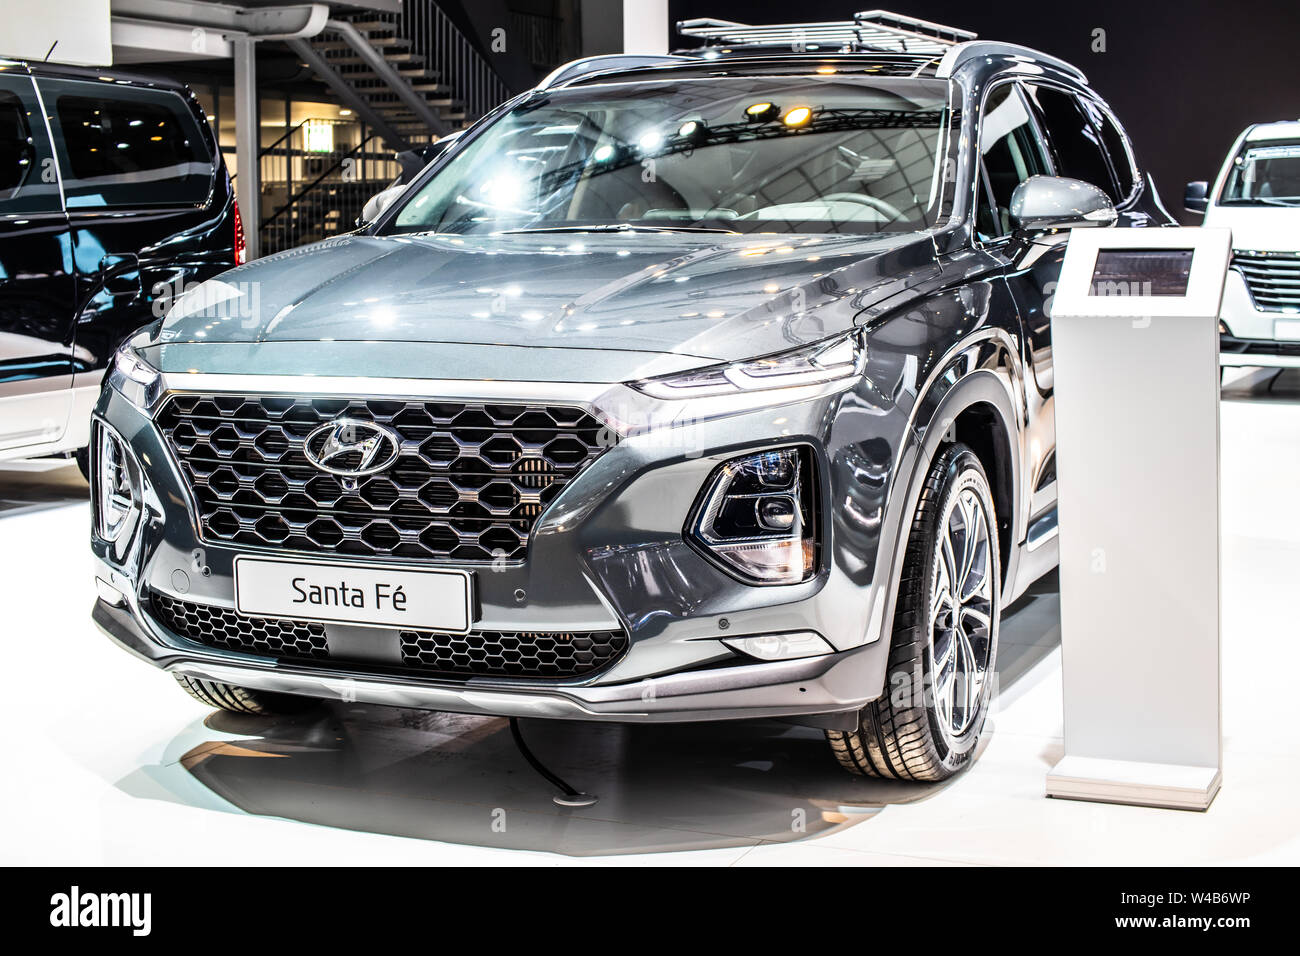 Brussels Belgium Jan 2019 Hyundai Santa Fe 4wd At Brussels Motor Show Fourth Generation Tm Suv Produced By Hyundai Motor Company Stock Photo Alamy